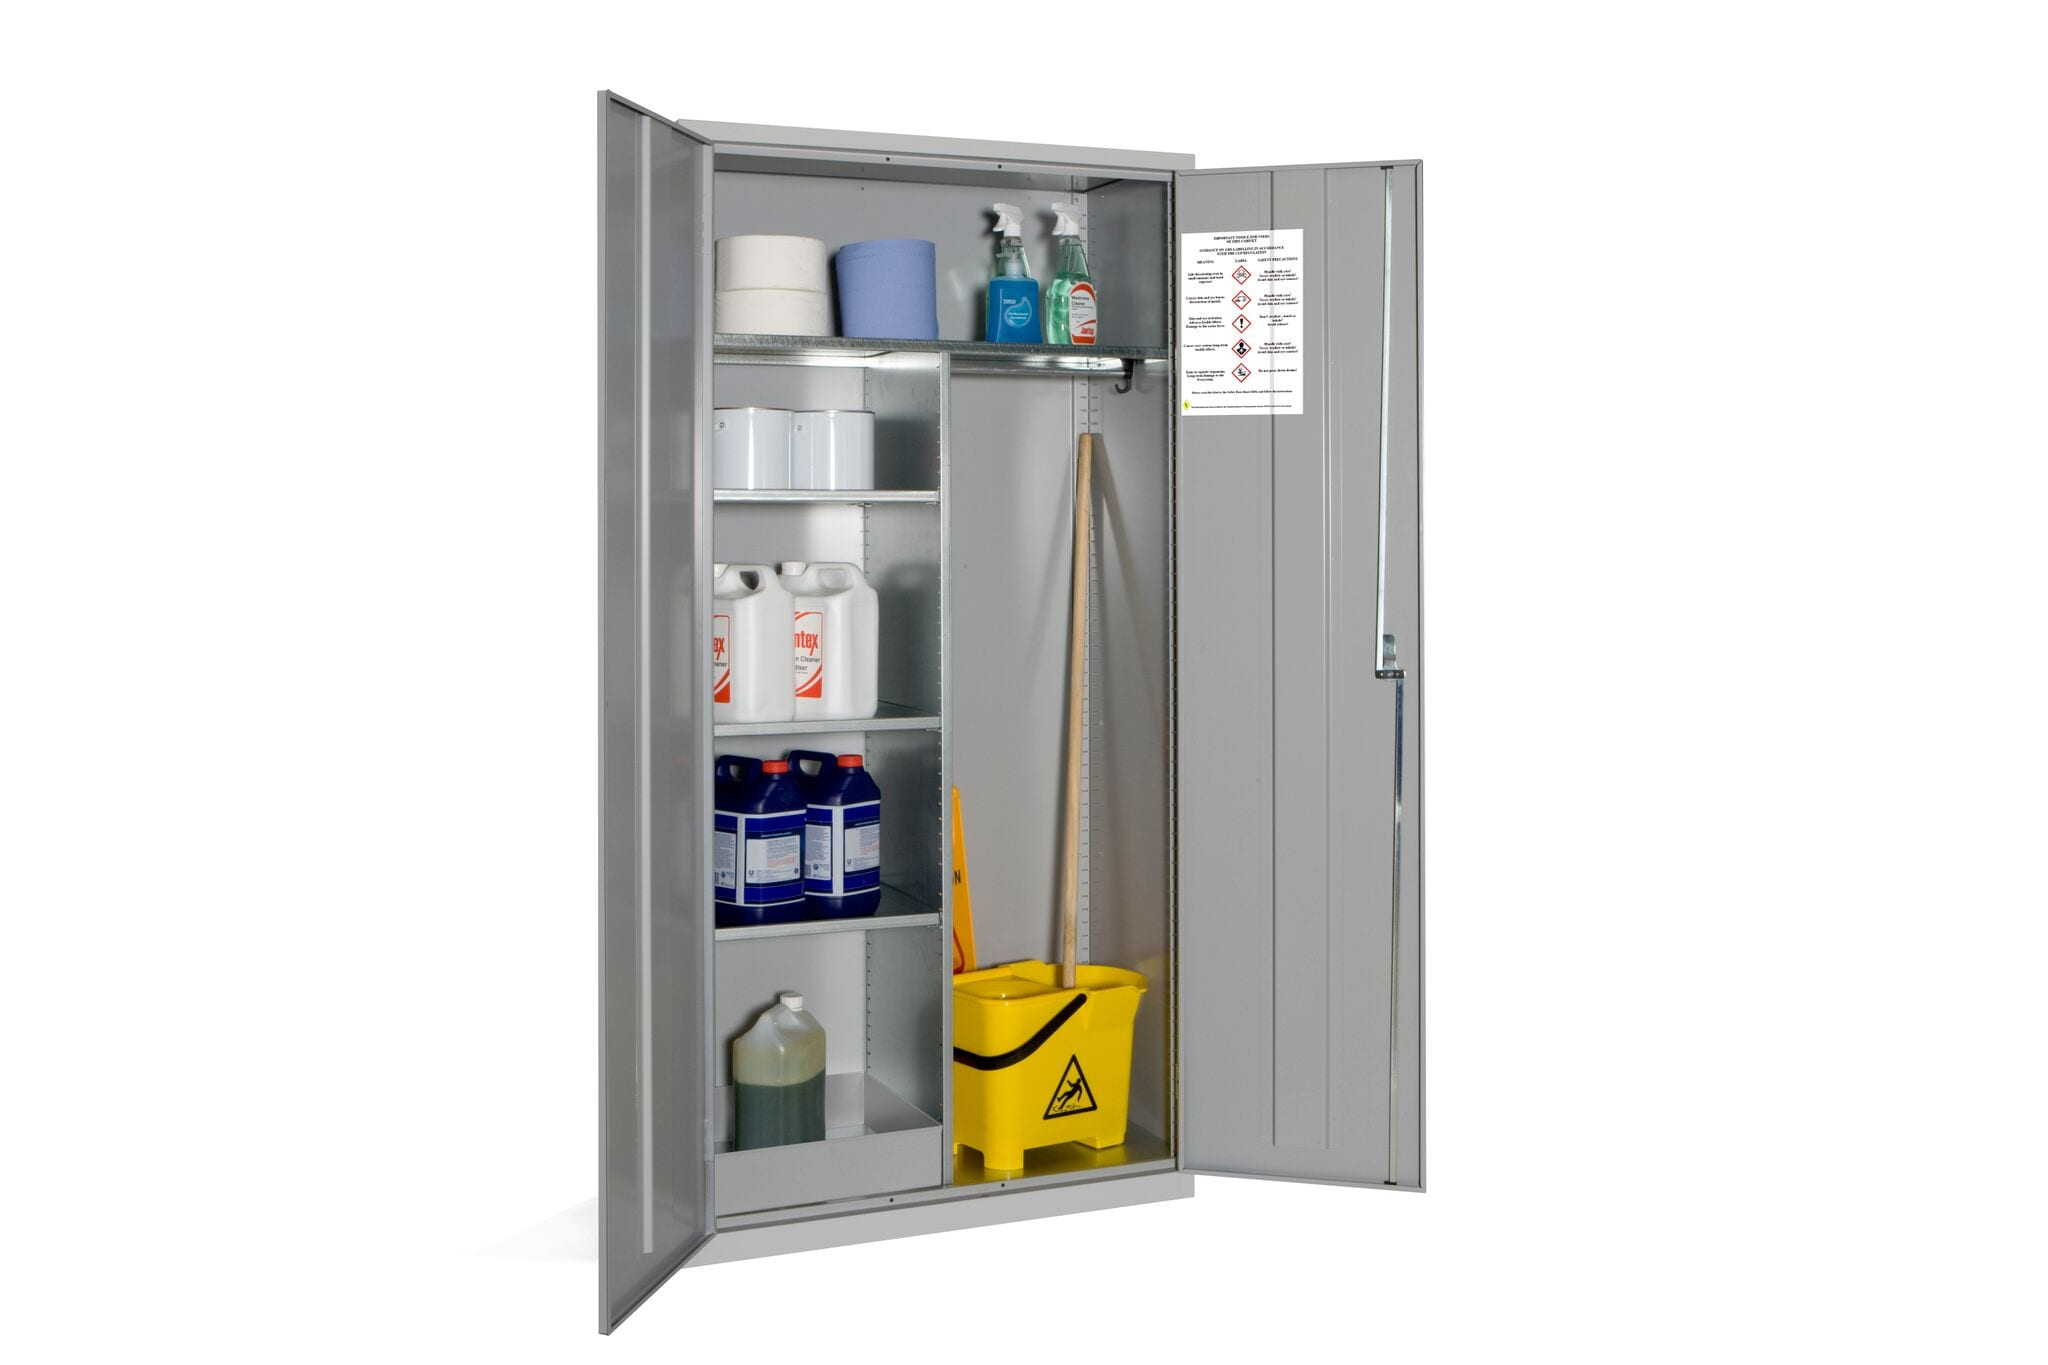 Janitorial Coshh Cabinets Storage Systems And Equipment